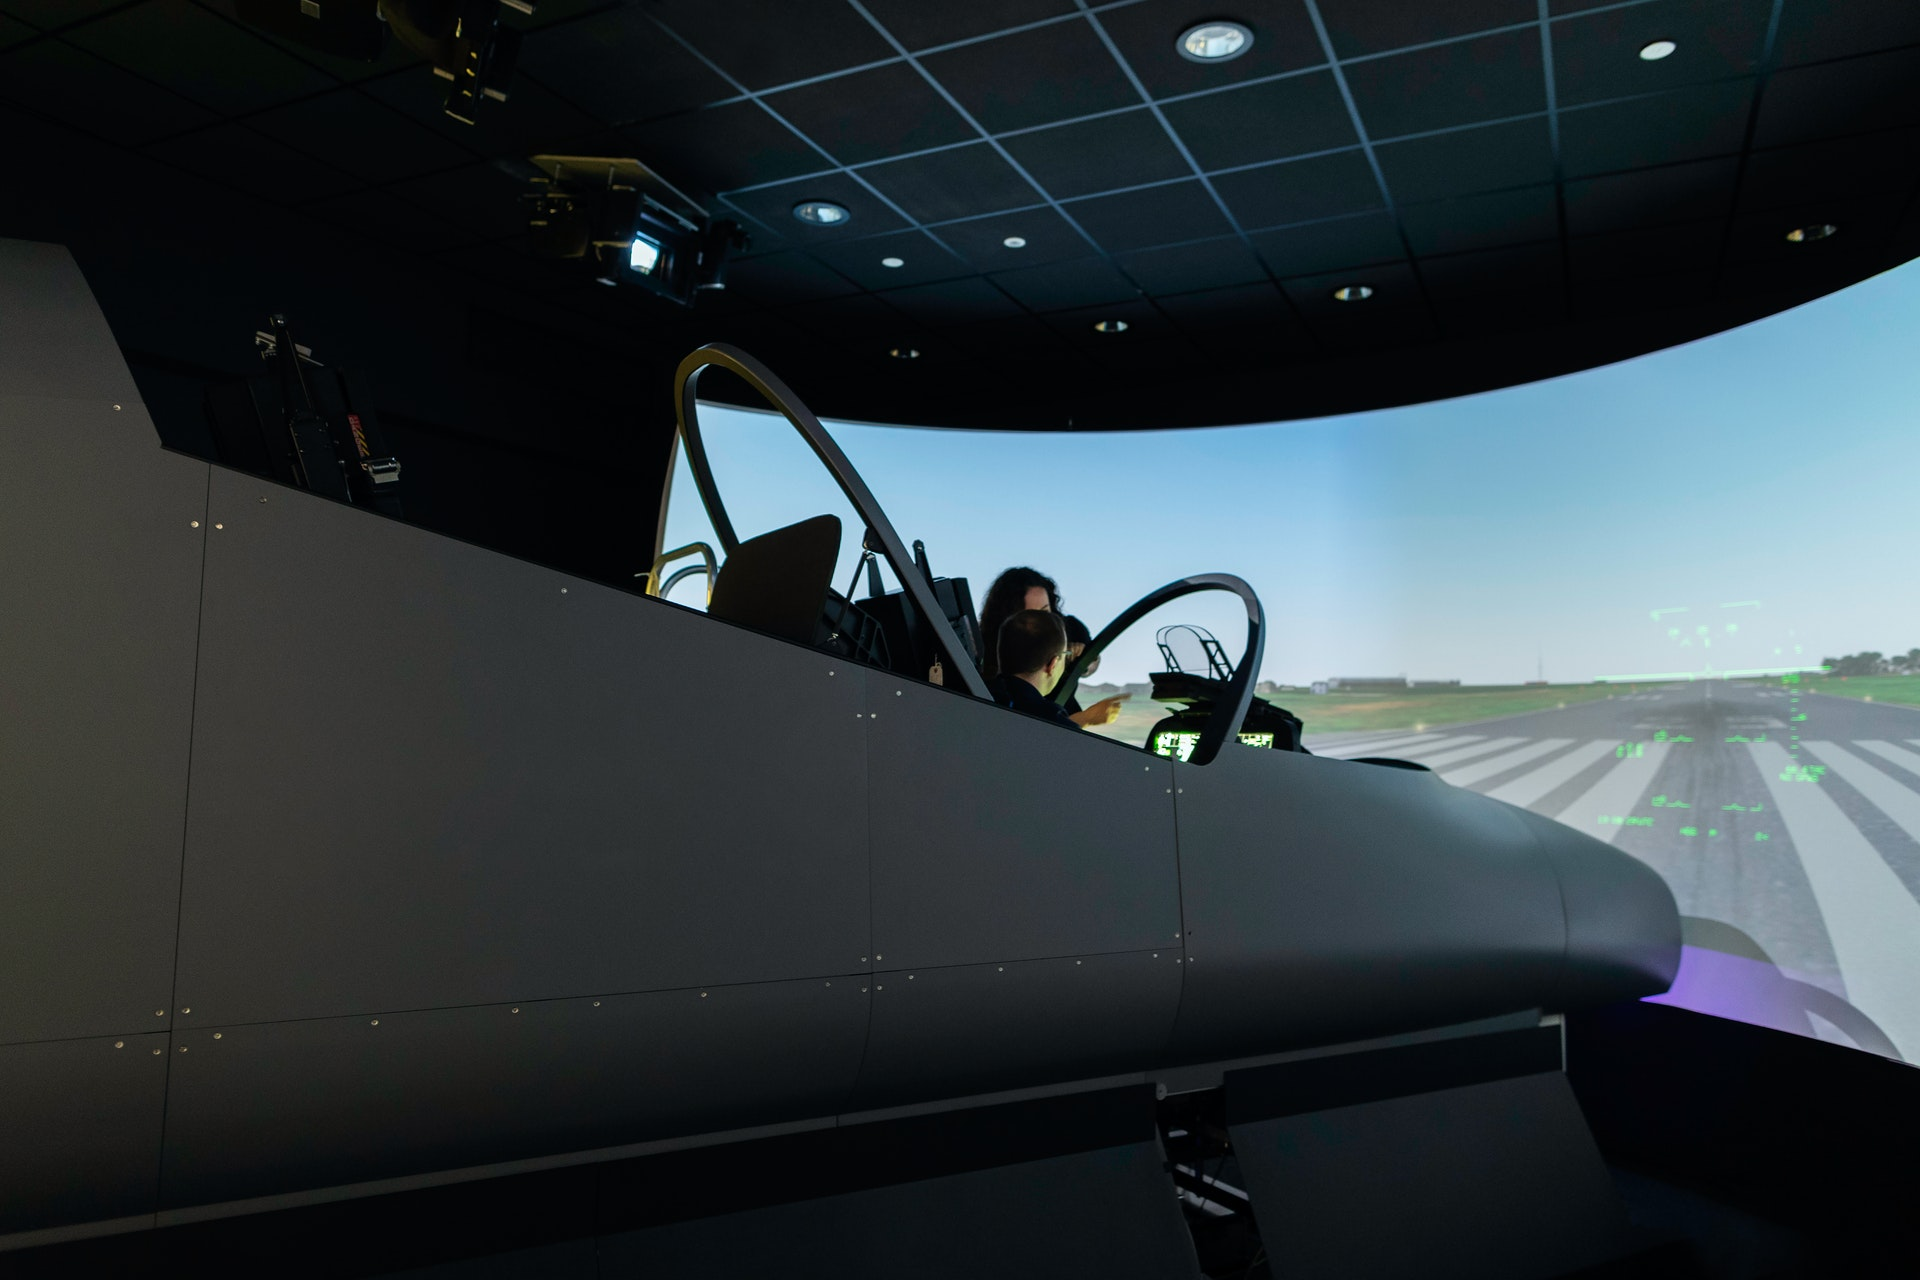 engineer-in-flight-simulator-3862137